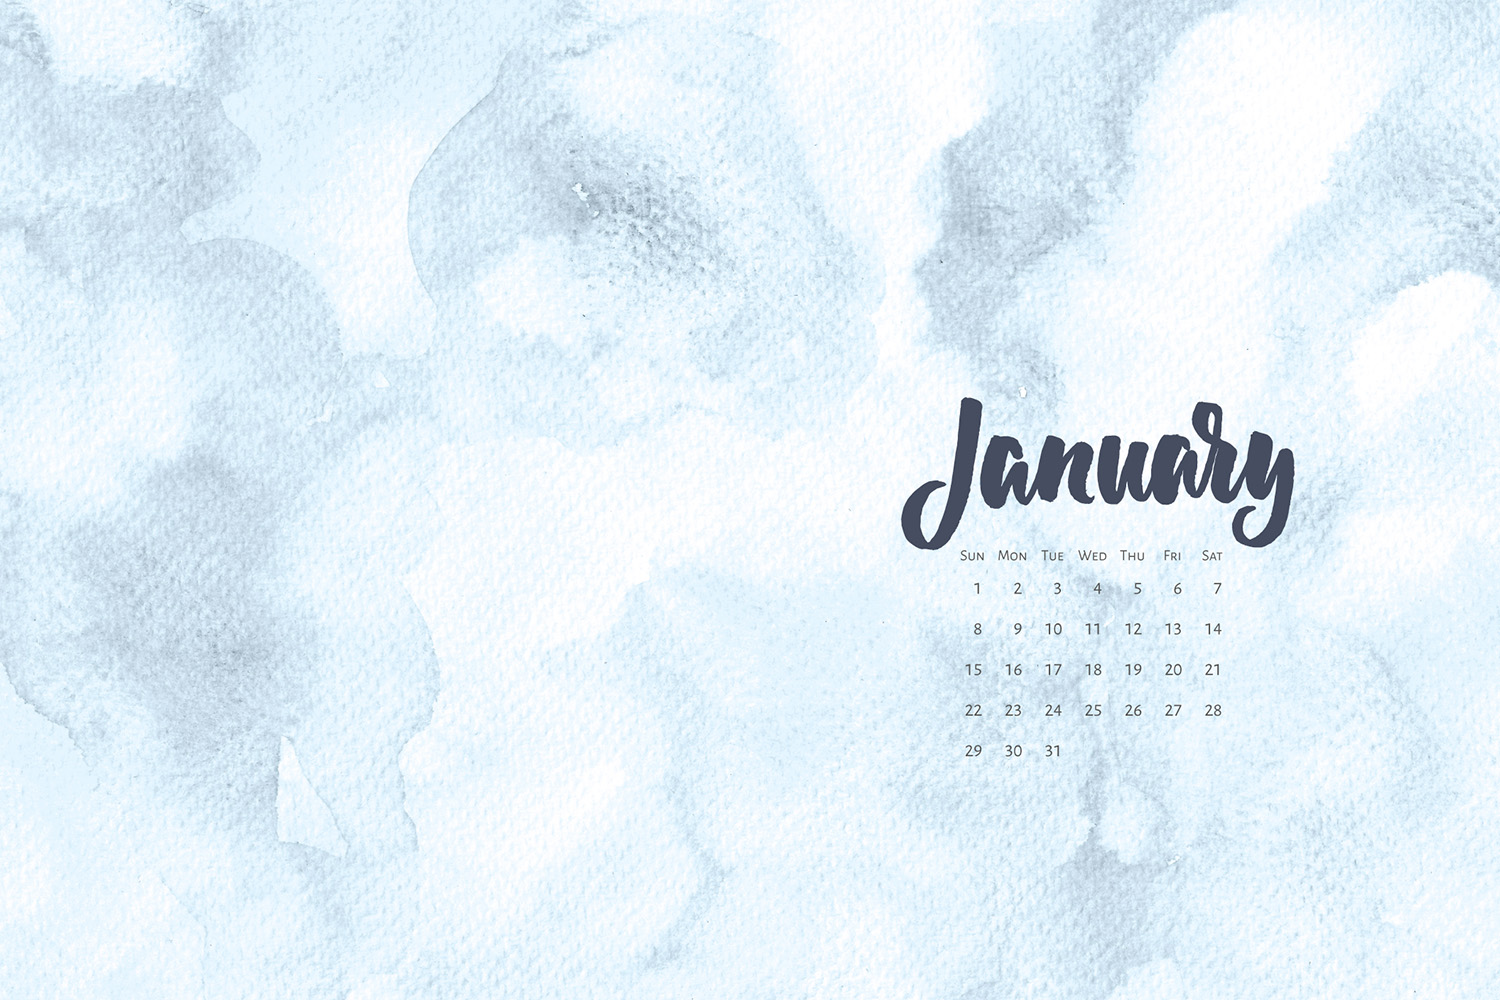 Download a free a calendar for January 2017. For personal use only | © typeandgraphicslab.com